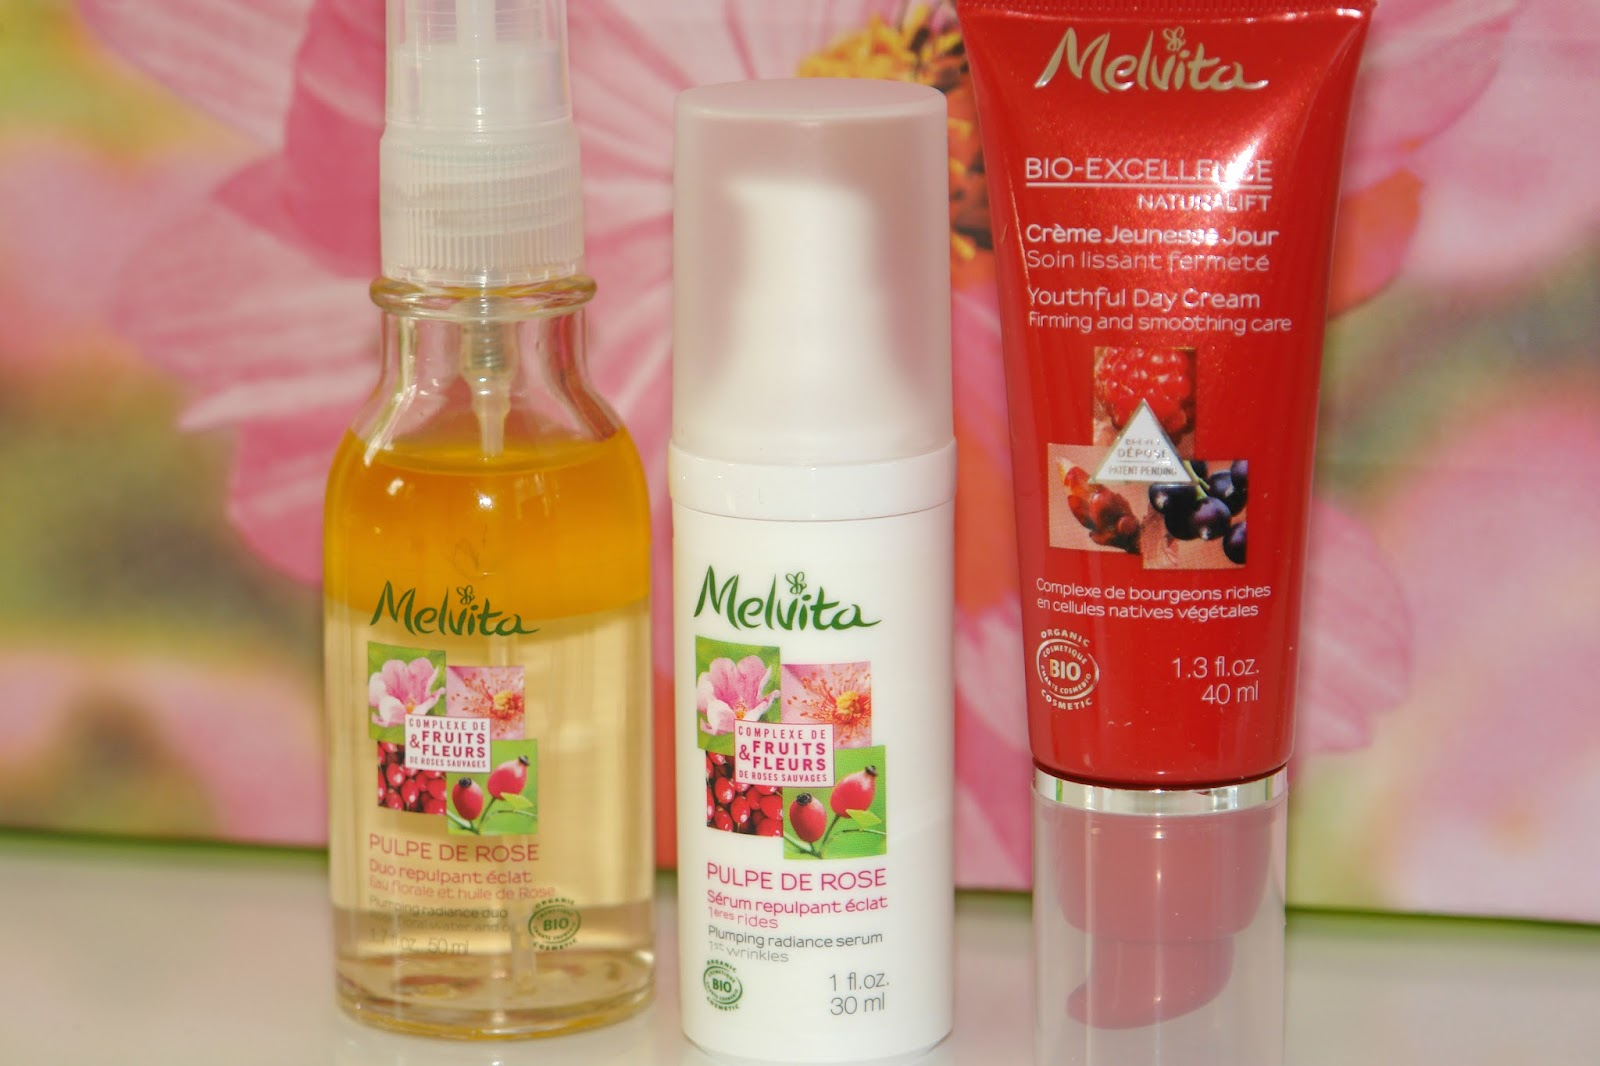 Melvita new skincare releases, Melvita Plumping Rose range, Melvita Plumping Radiance Duo, Melvita Plumping Radiance Serum, Melvita Plumping Radiance Cream, Melvita outhful Eye Contour, Youthful Day Cream*, Youthful Night Cream, Youthful Serum and Youthful Extraordinary Water, Bio-Excellence Naturalift range, beauty, review, skincare,